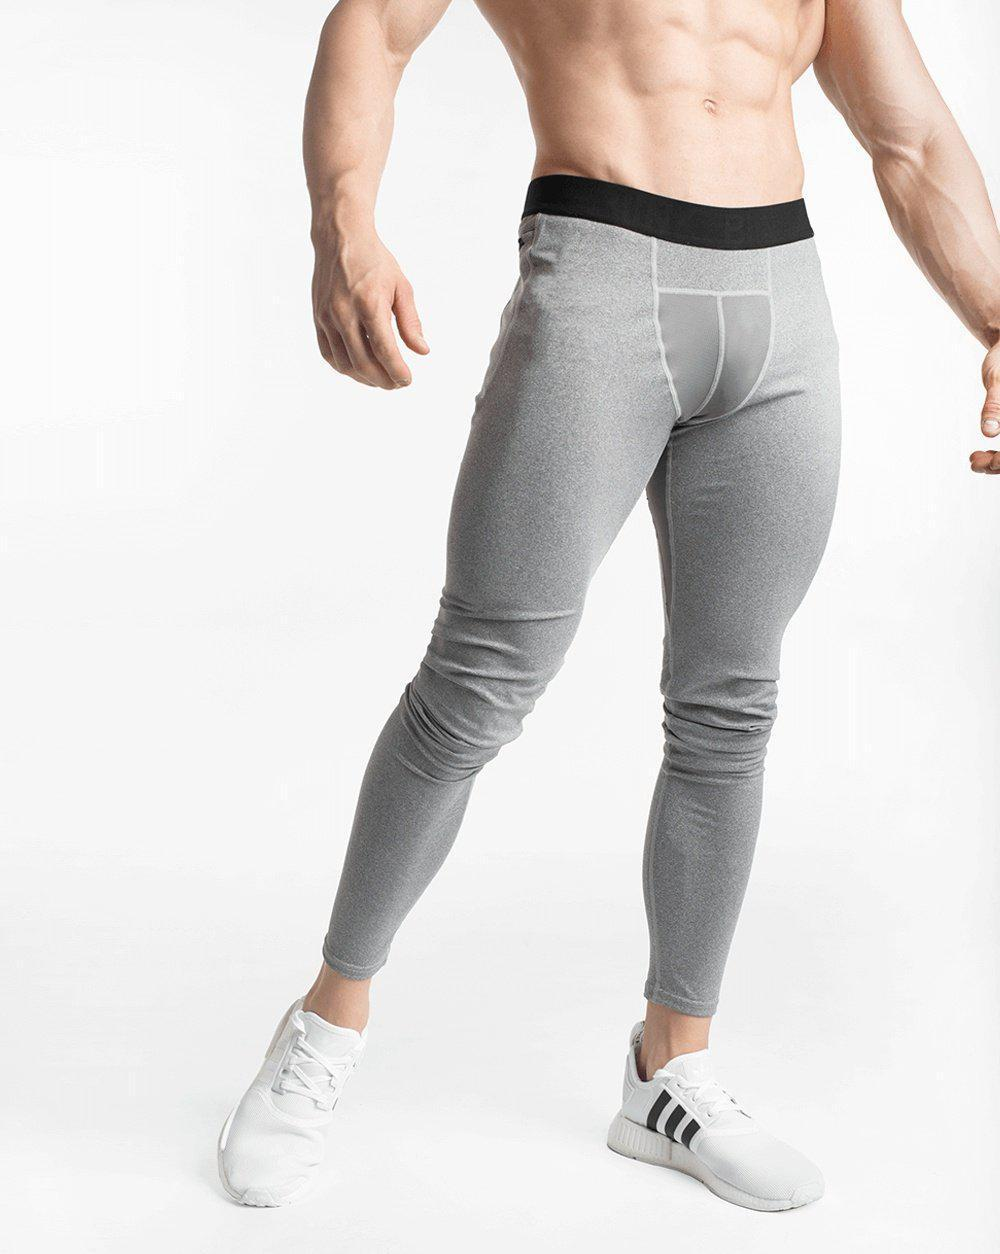 Biink DRY Training Tights - Arctic Grey